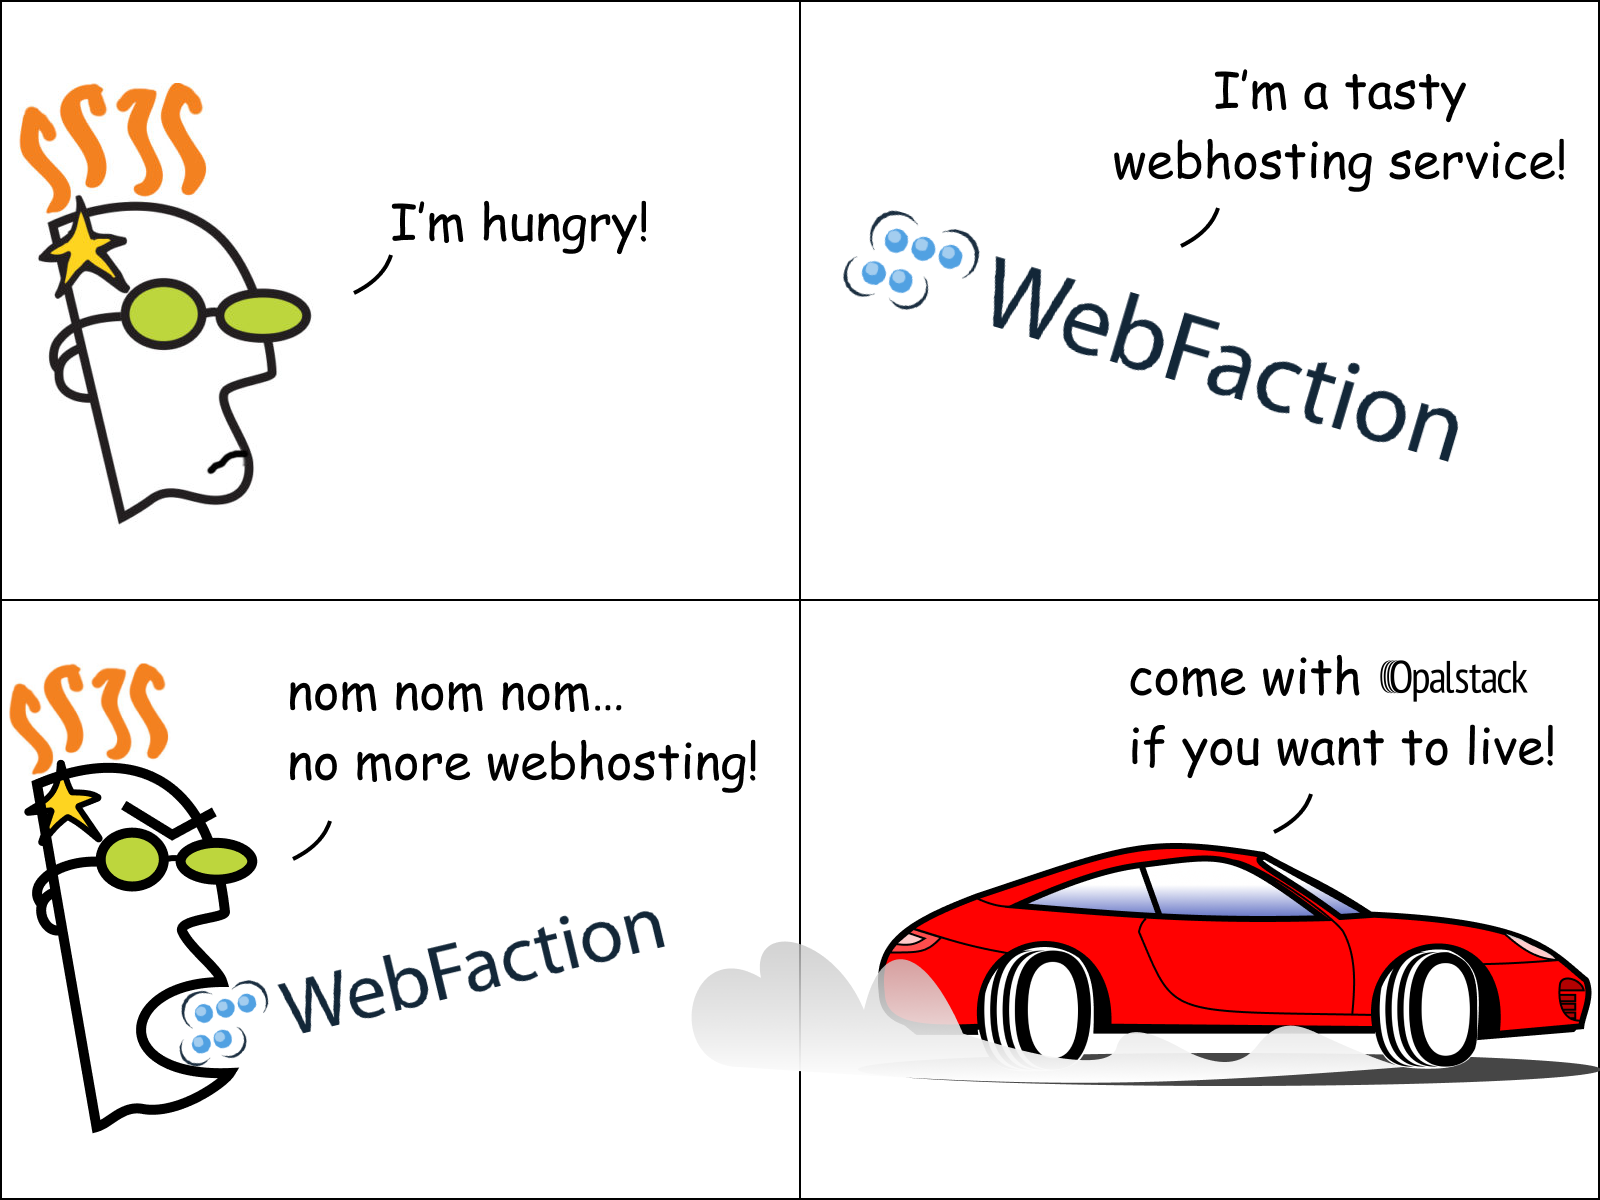 webfaction to opalstack